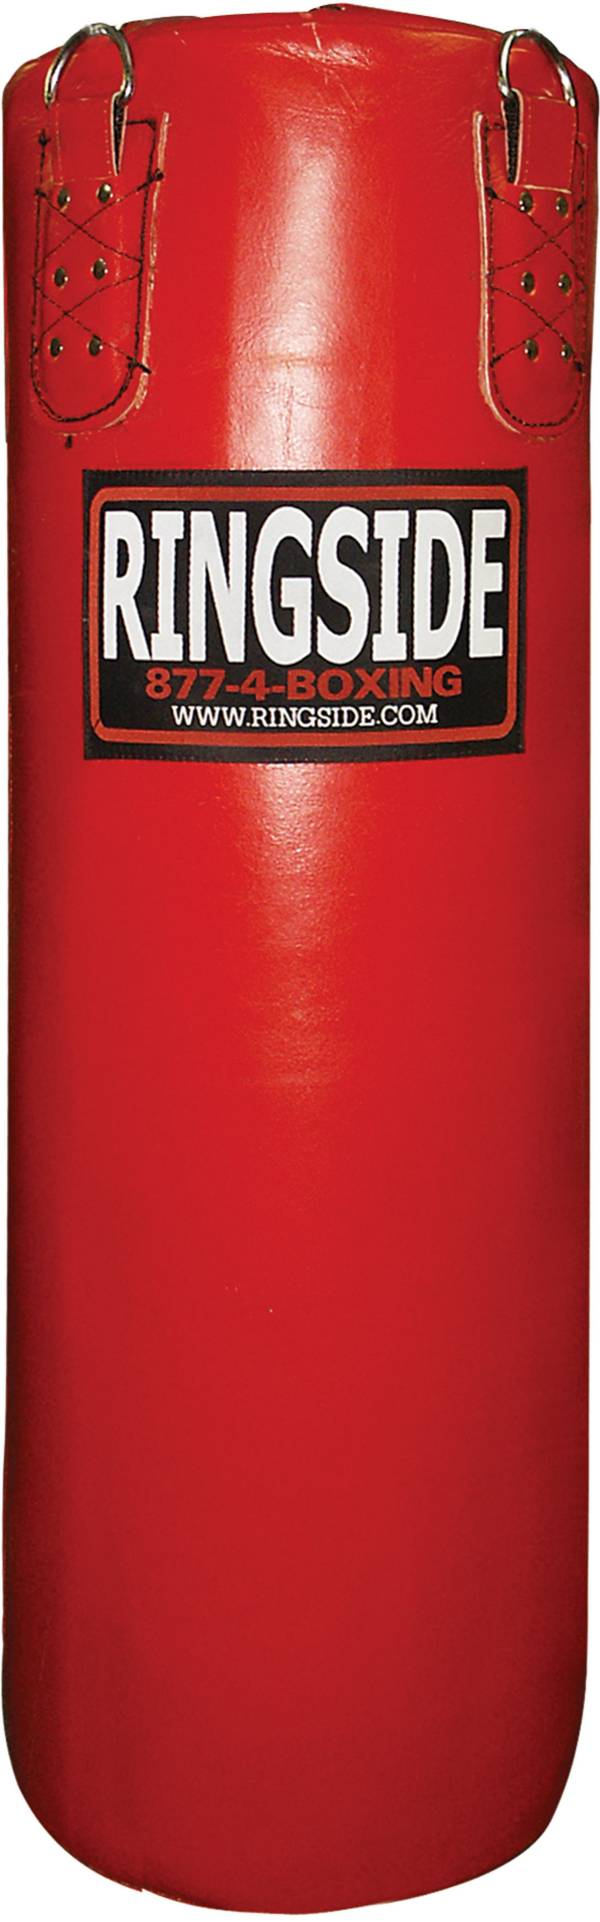 Ringside 70 lb. Leather Heavy Bag product image